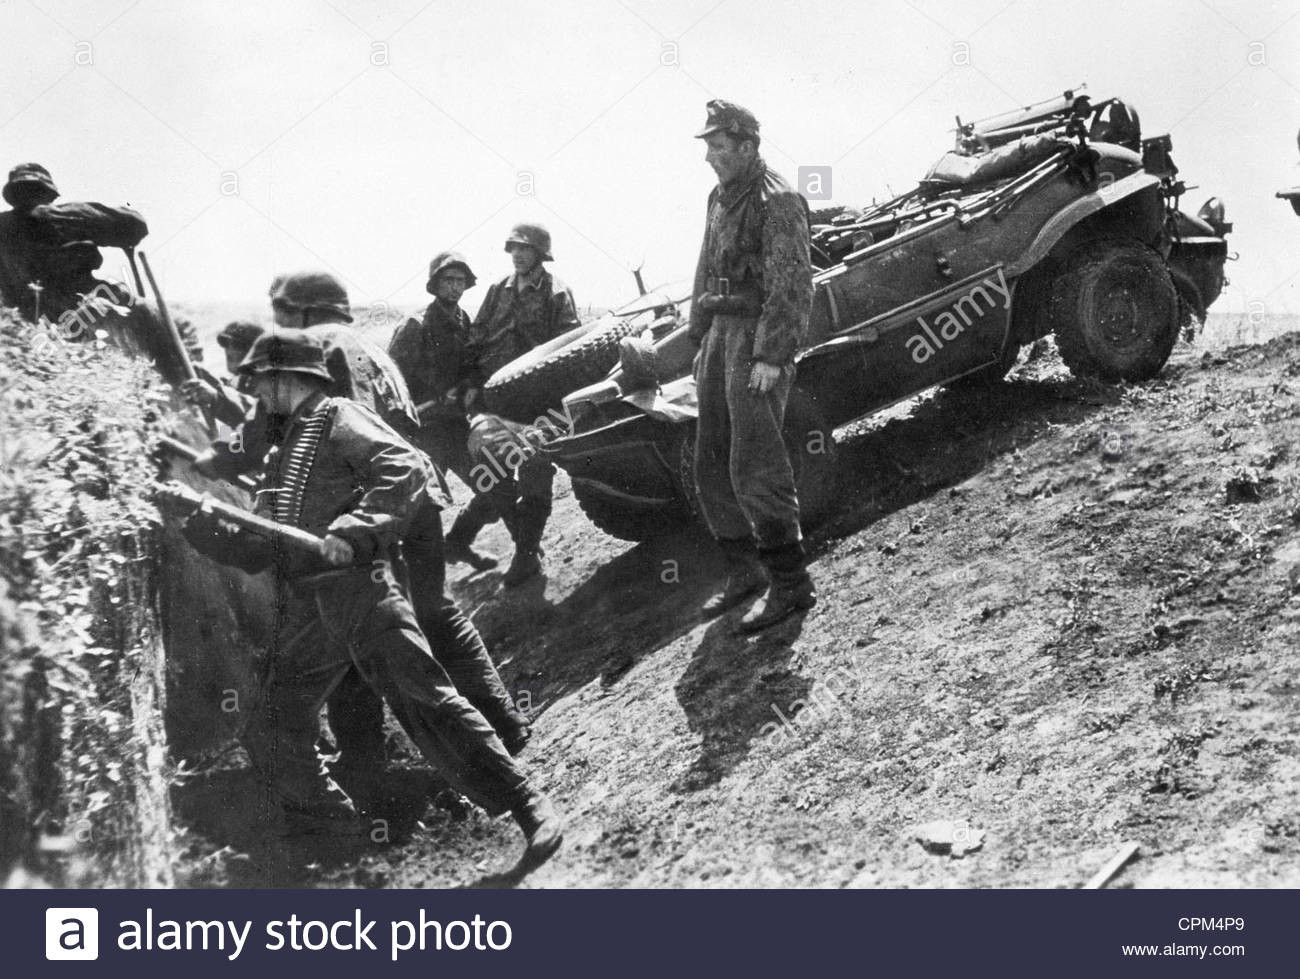 soldiers-of-the-waffen-ss-with-a-vw-schwimmwagen-1943-CPM4P9